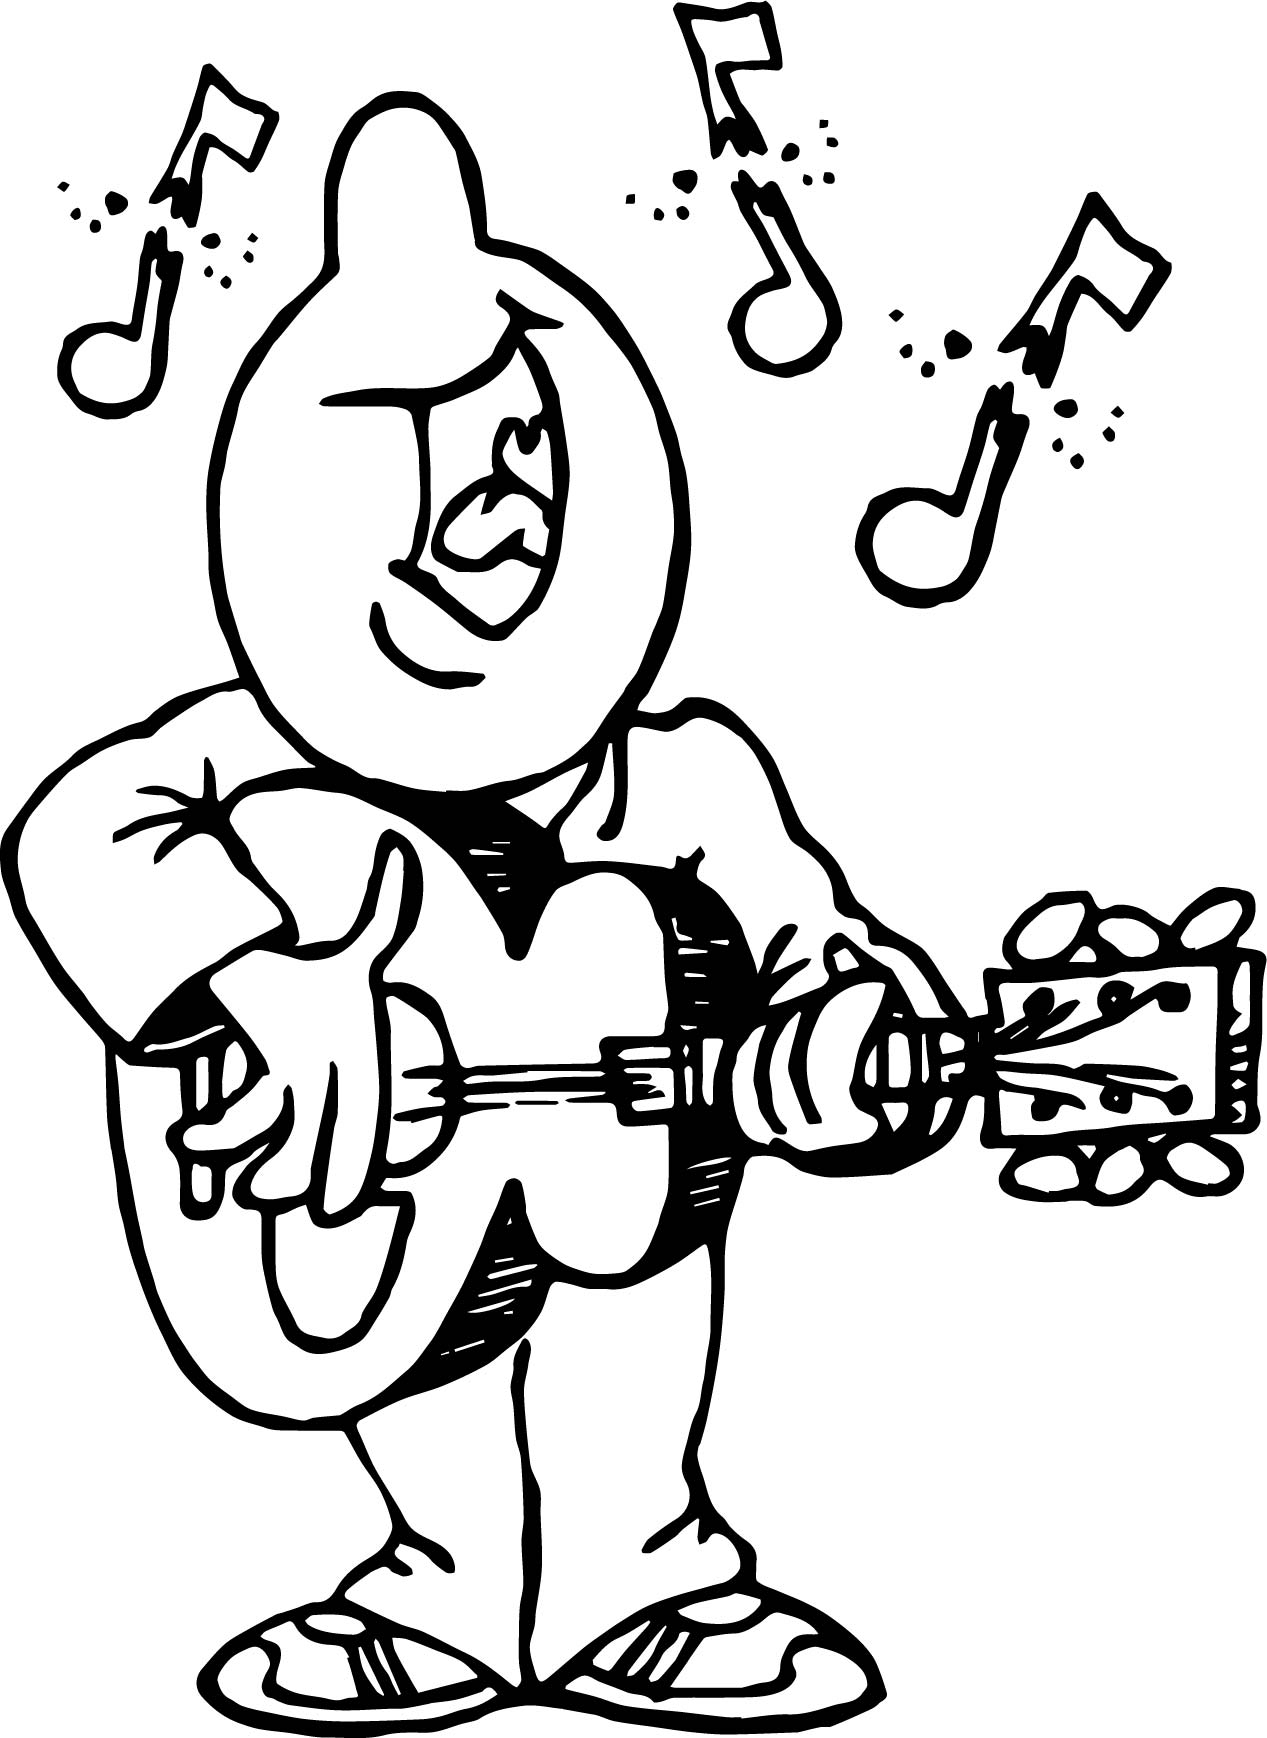 playing the guitar and say song man coloring page wecoloringpage